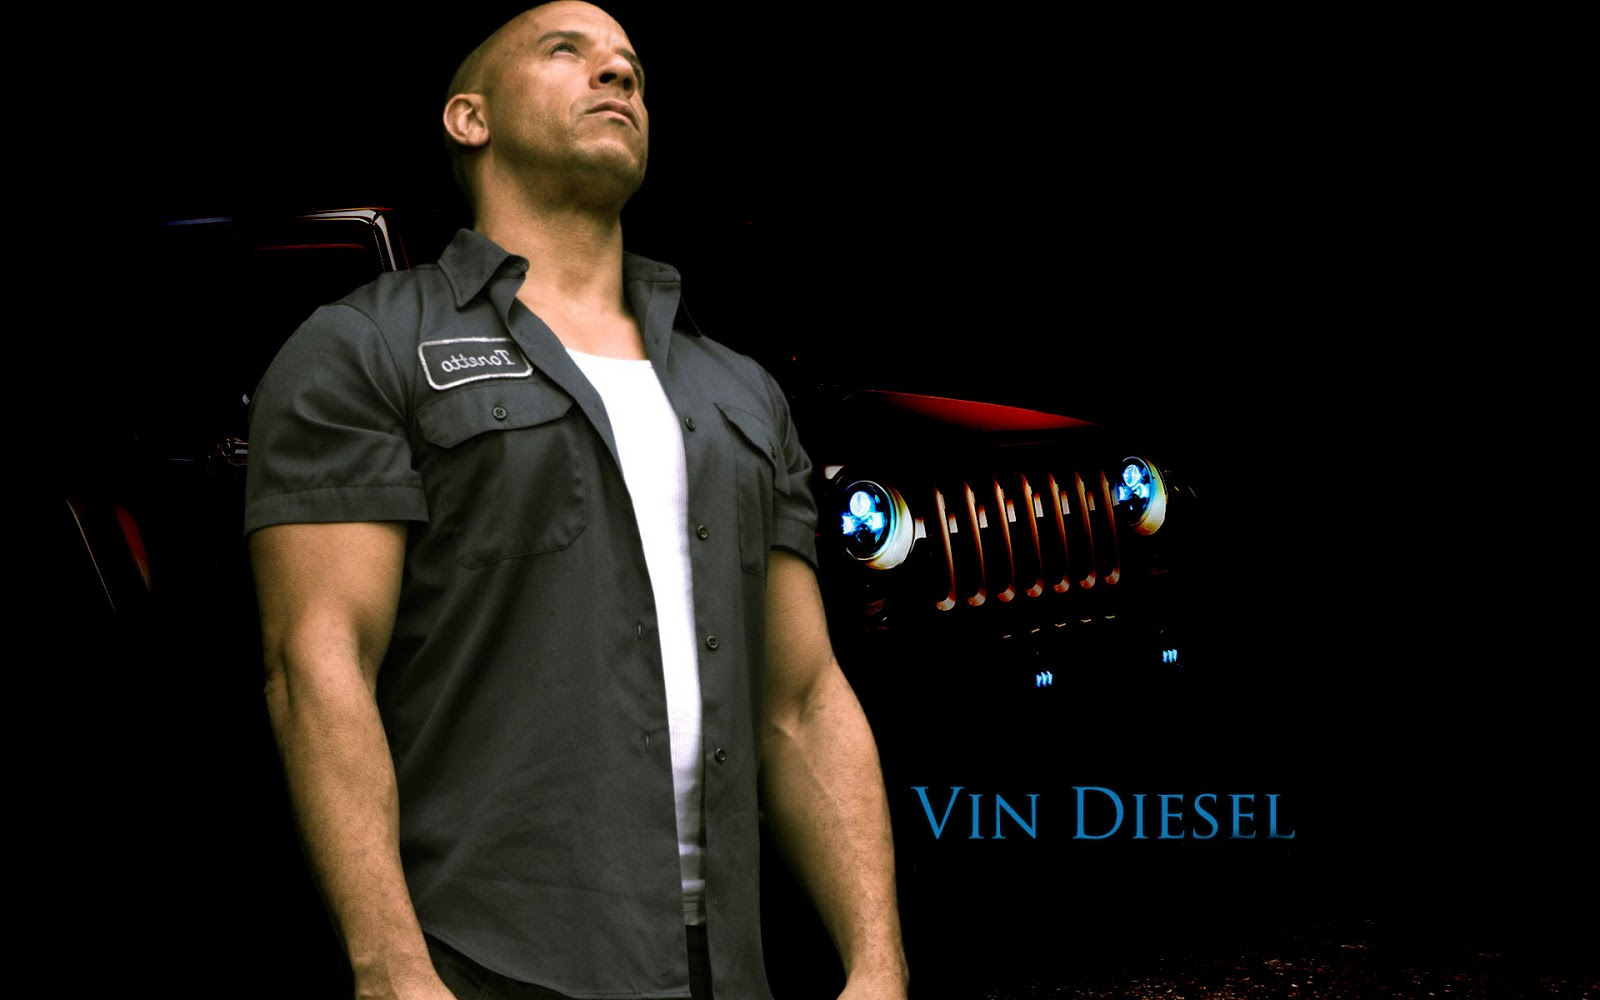 hotfixtech 39 s blog the final rides vin diesel confirms fast and furious 8 9 and 10. Black Bedroom Furniture Sets. Home Design Ideas